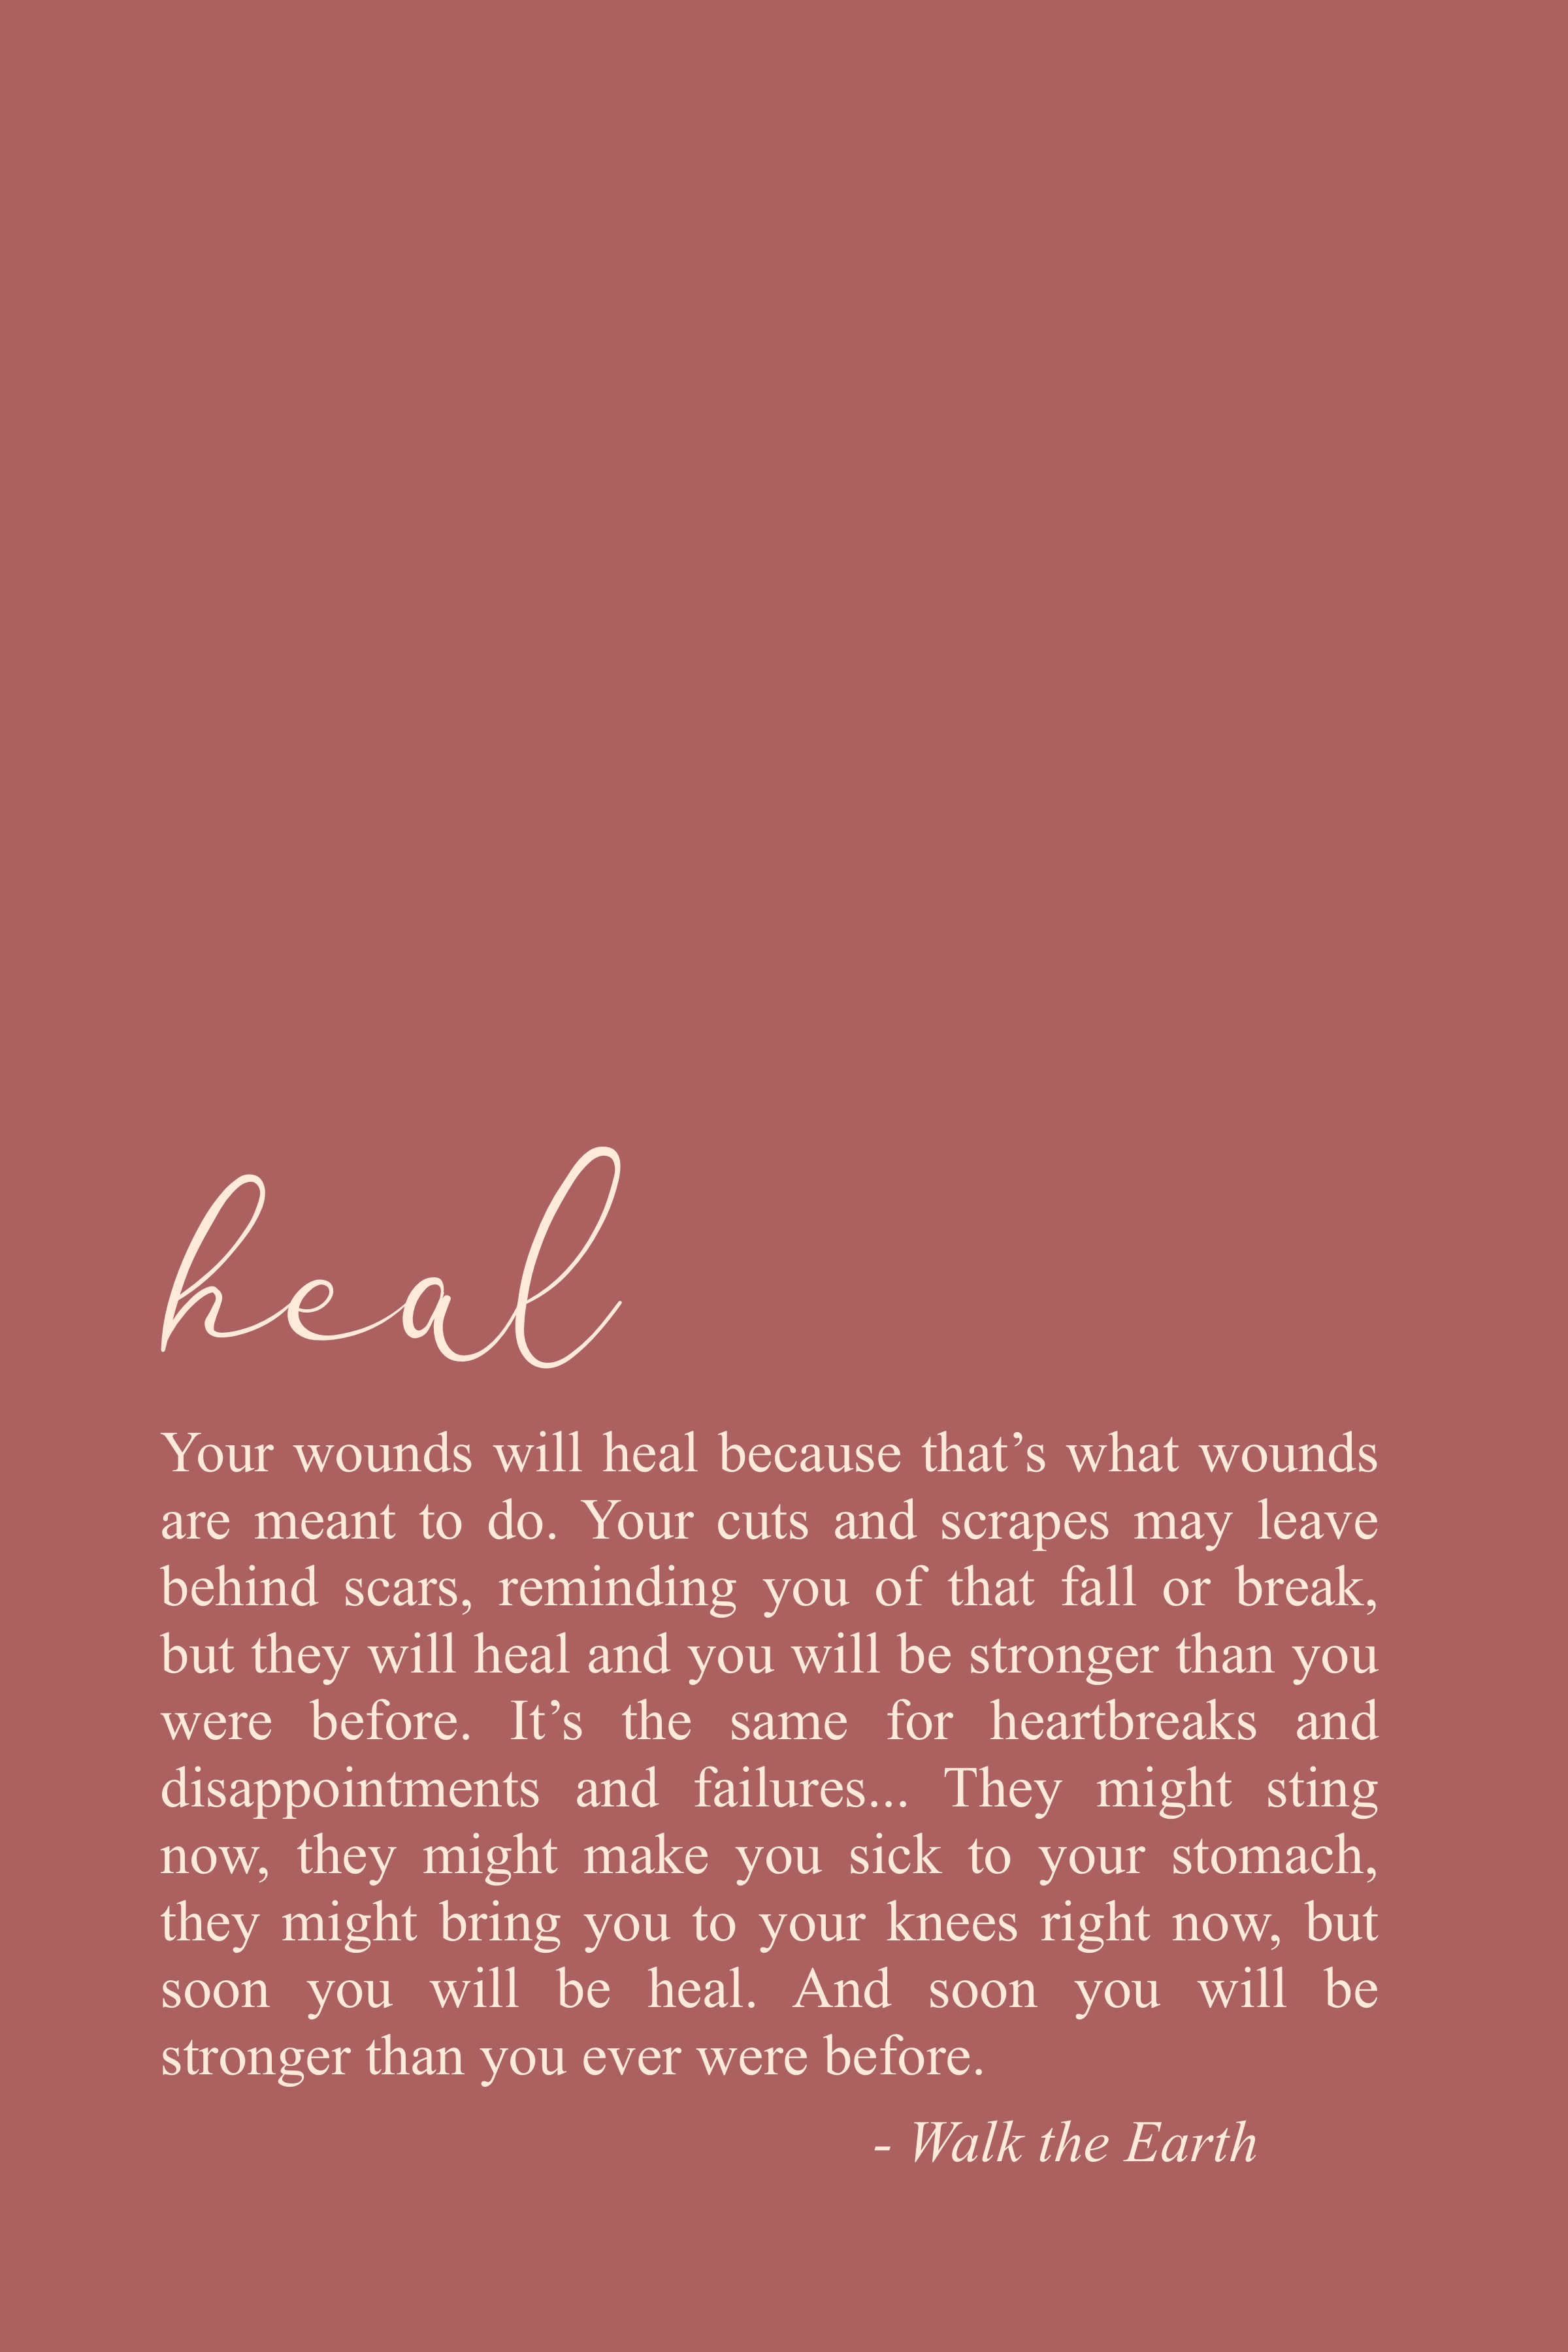 Inspirational Healing Quotes & Poetry Selbstliebe   – Encouragement Quotes – Inspirational Words & Poems